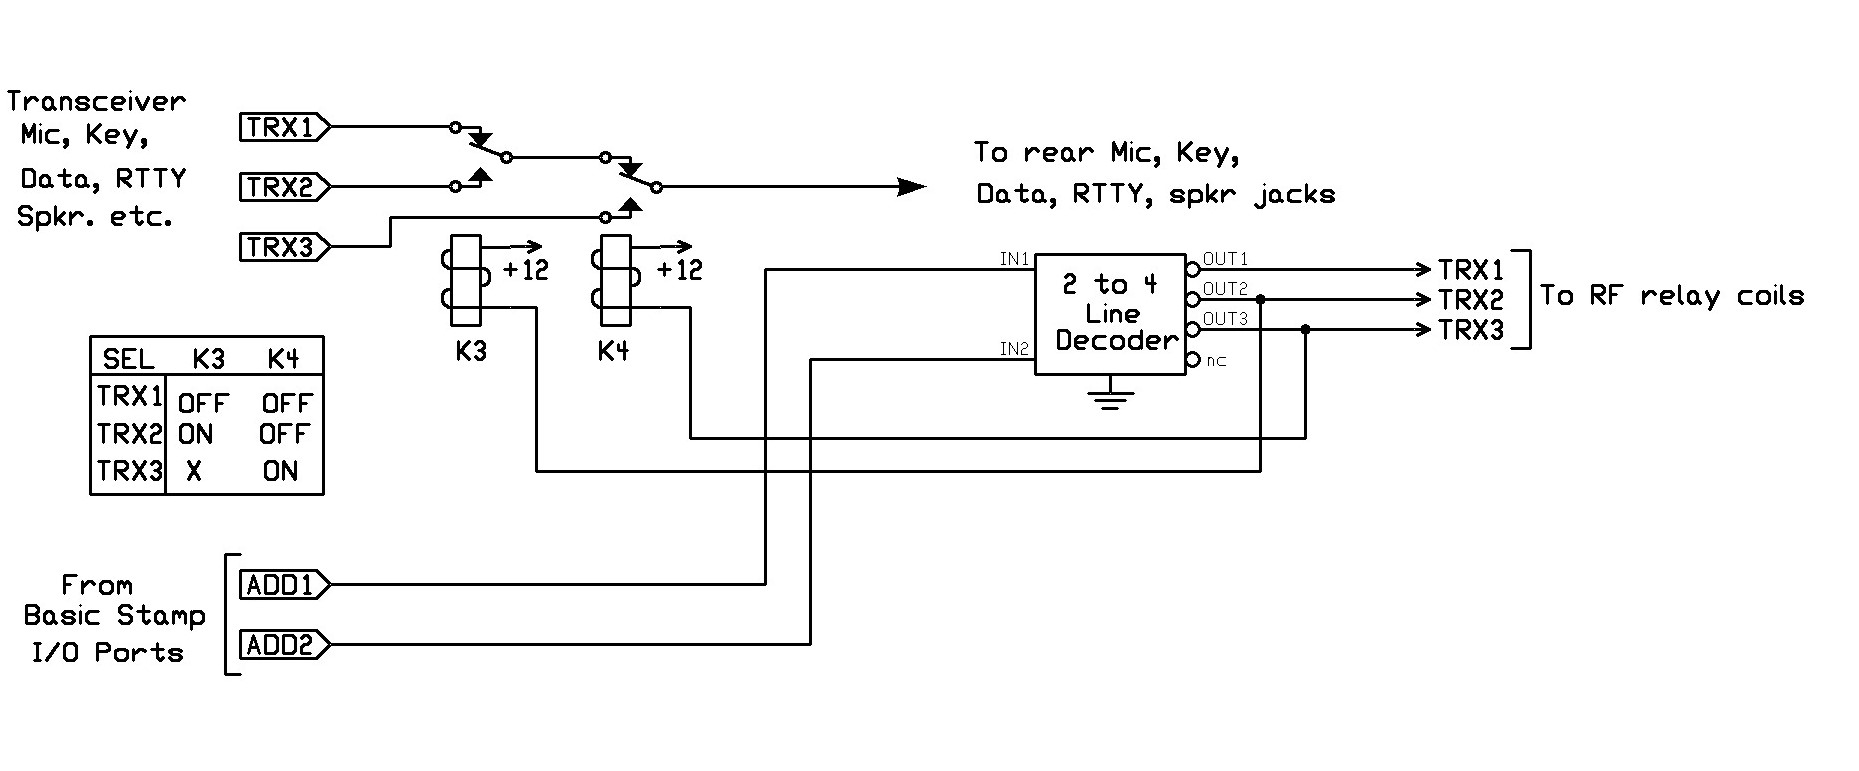 W8zr multicontroller technical description the above figure illustrates the simplified switching of the stationpro ii which allows independent selection of three transceiverexciters shown as trx1 ccuart Image collections